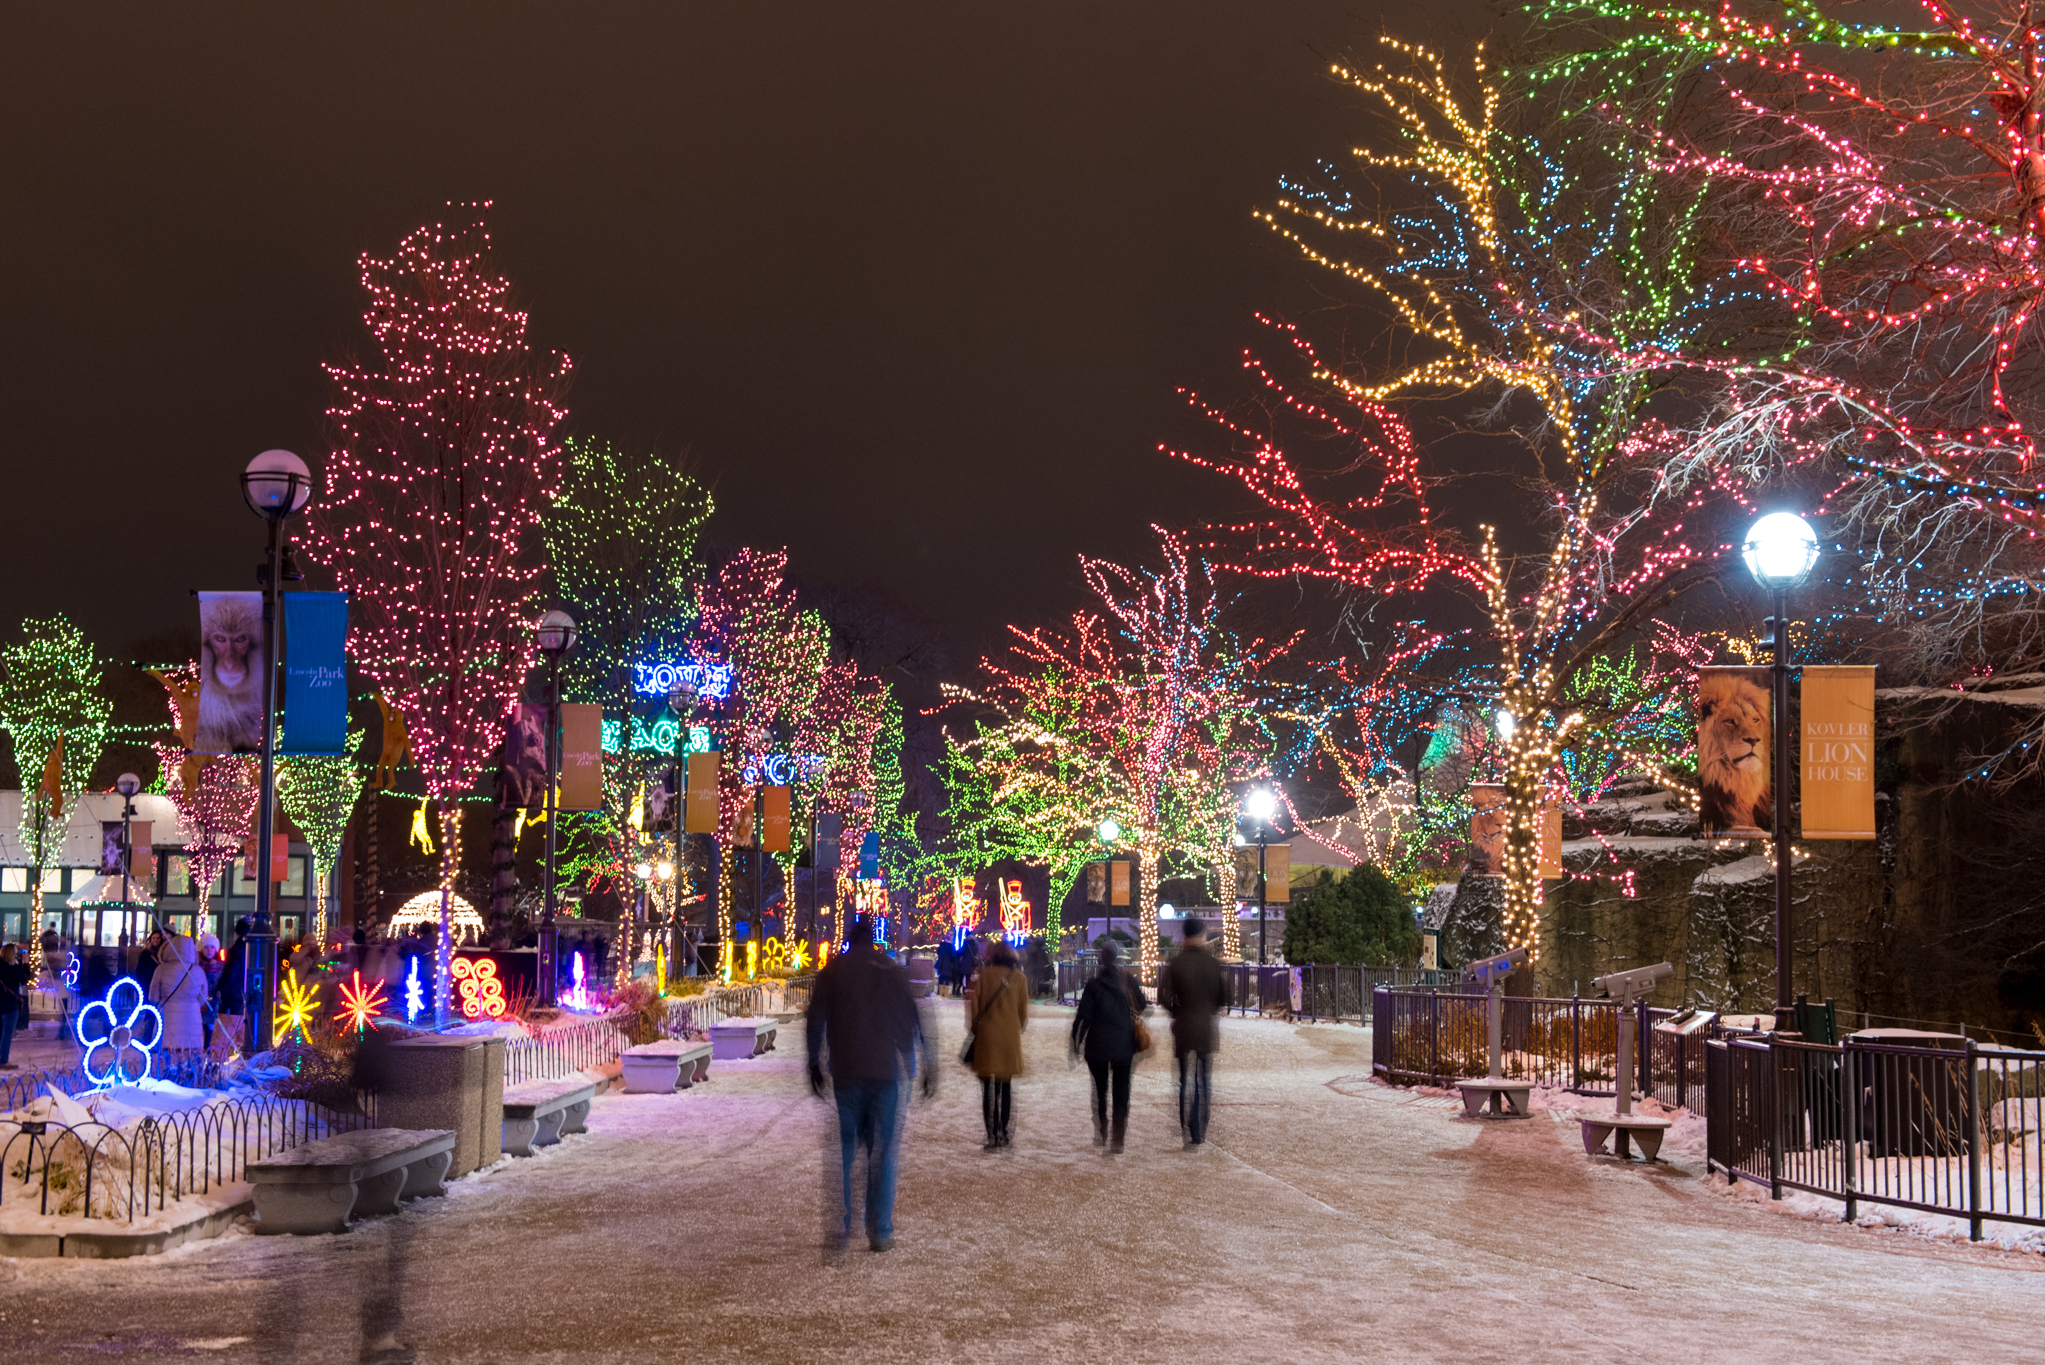 ZooLights will still illuminate Lincoln Park this year, but you'll have to pay admission to get in